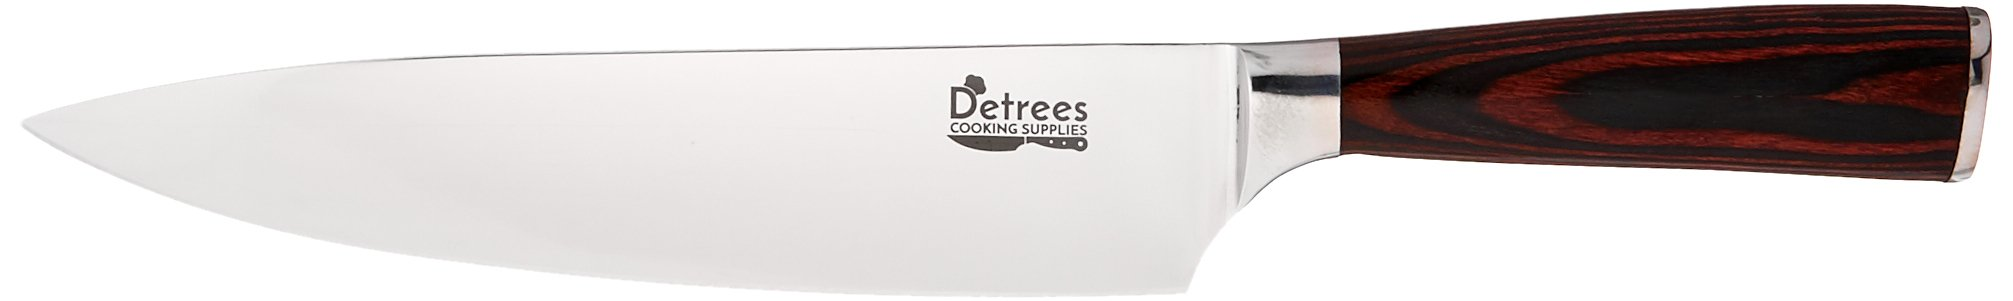 Detrees Chef Knife, All Purpose 8 Inch Kitchen Knife, Razor Sharp Knife, Durable, Rust-Proof Chefs Knife, High Carbon Stainless Steel—Perfect Kitchen Knives for Home Chefs and Cooks